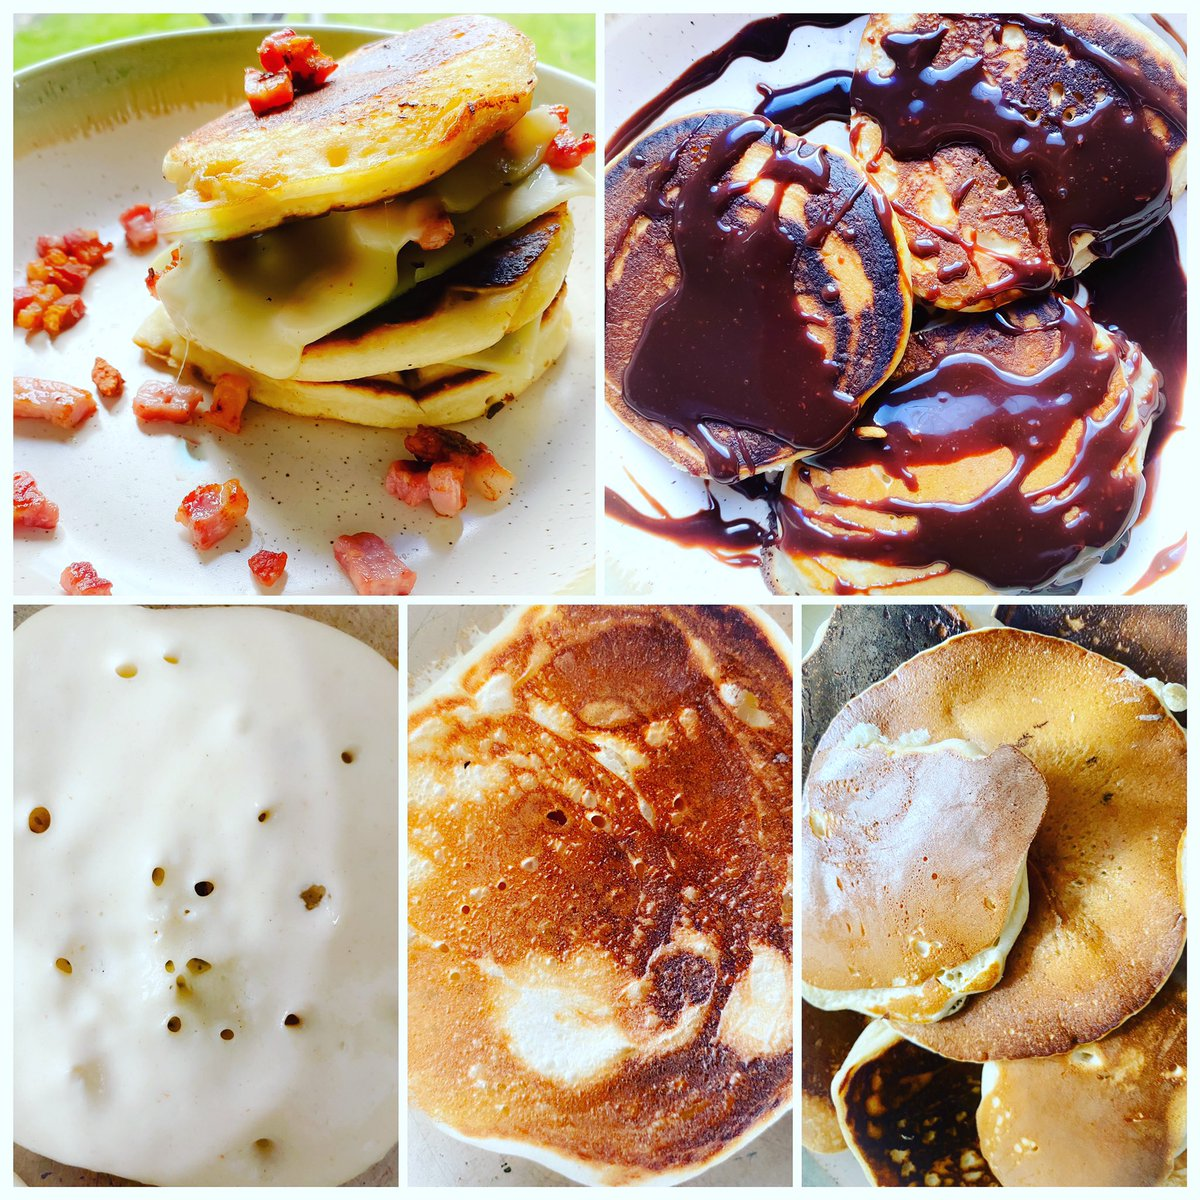 What's for Breakfast at your house this Monday Morning #Breakfast #Monday #lockdown #Chef #Eat #recipe